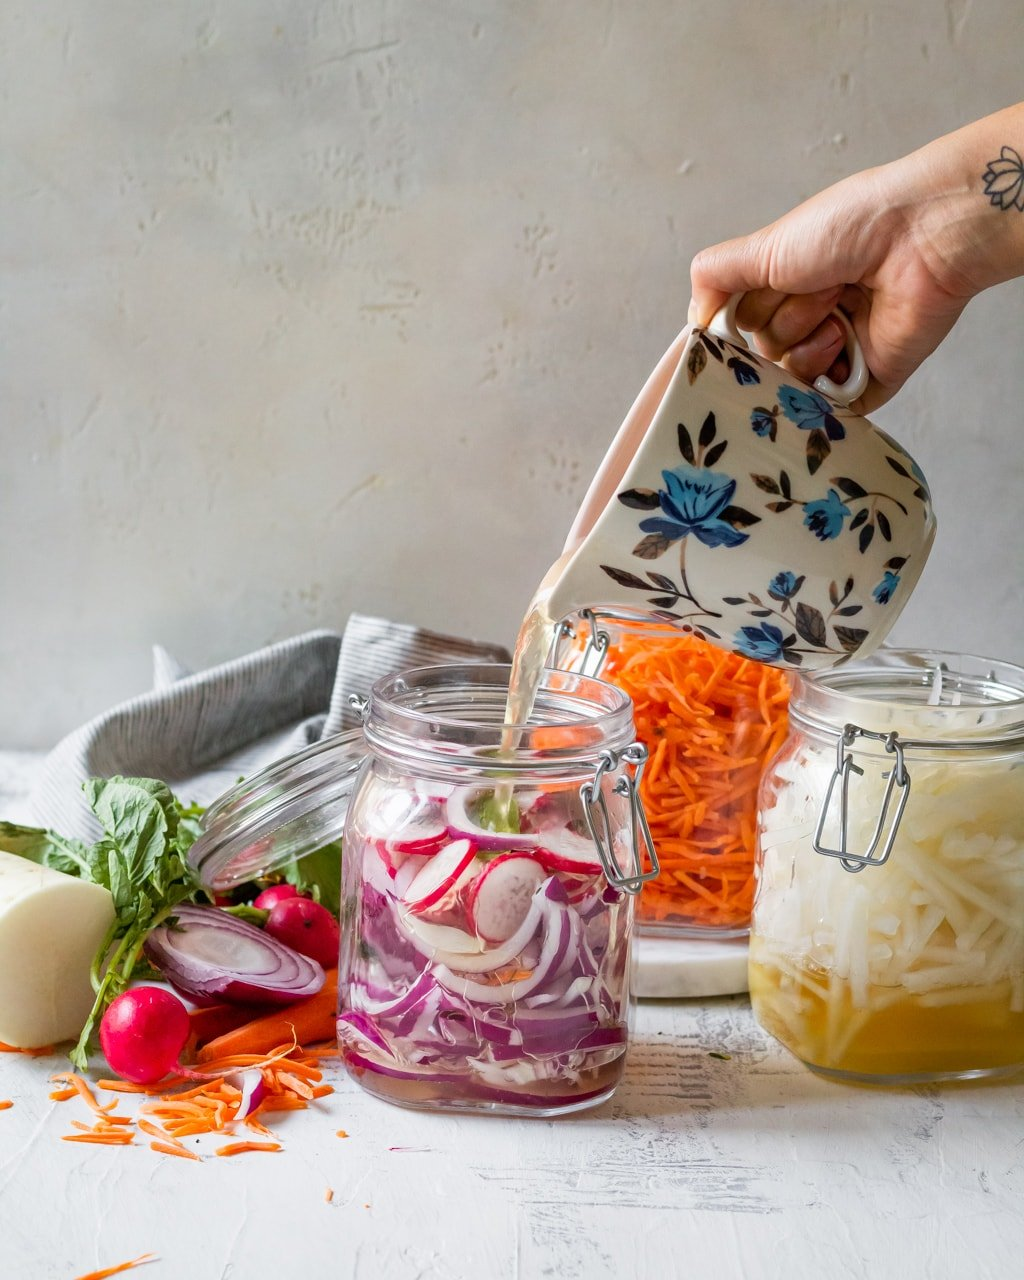 pouring pickling liquid over the vegetables